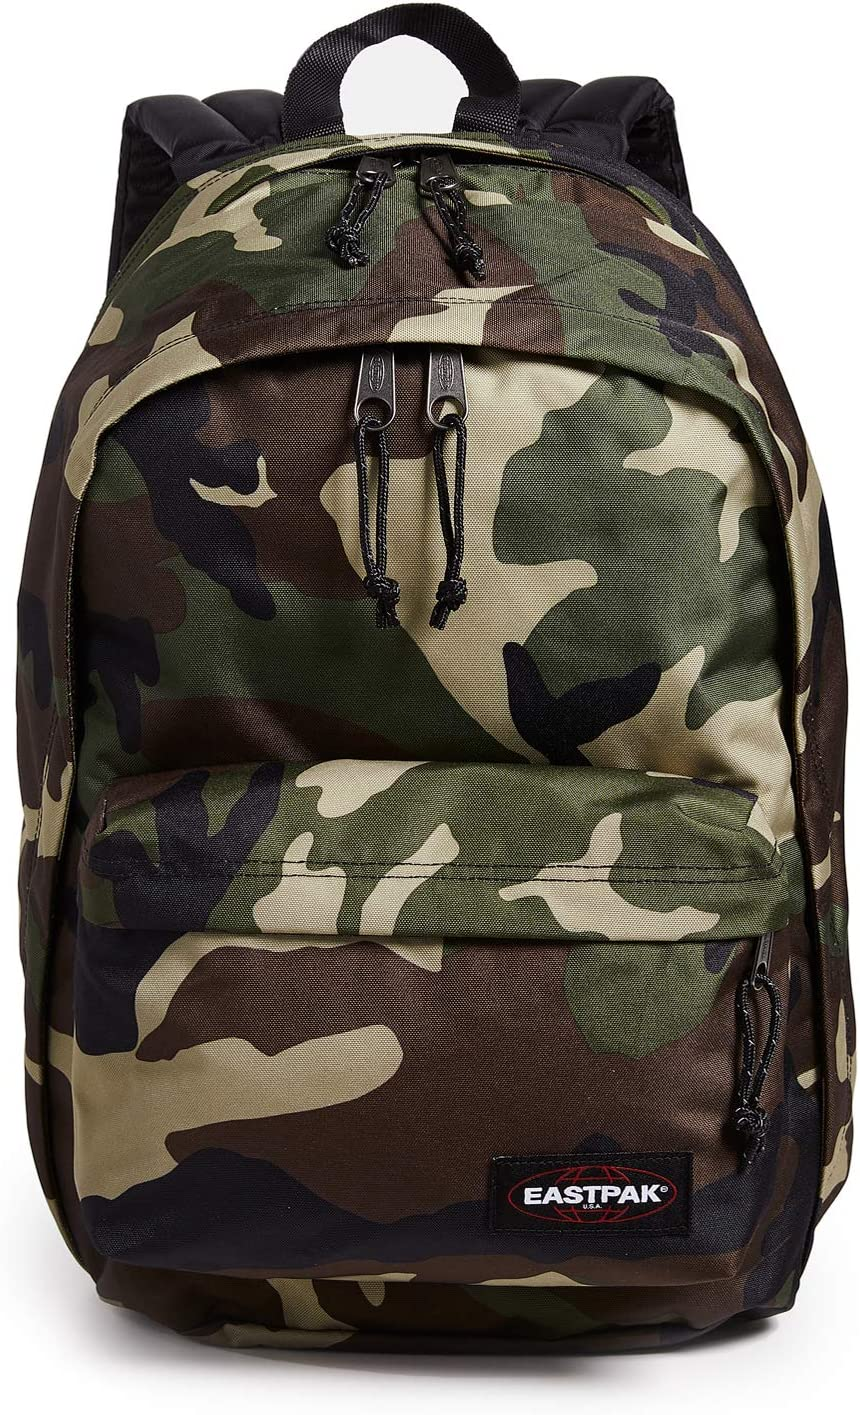 Eastpak Women's Back to Work Backpack, Camo, Green, Print, One Size